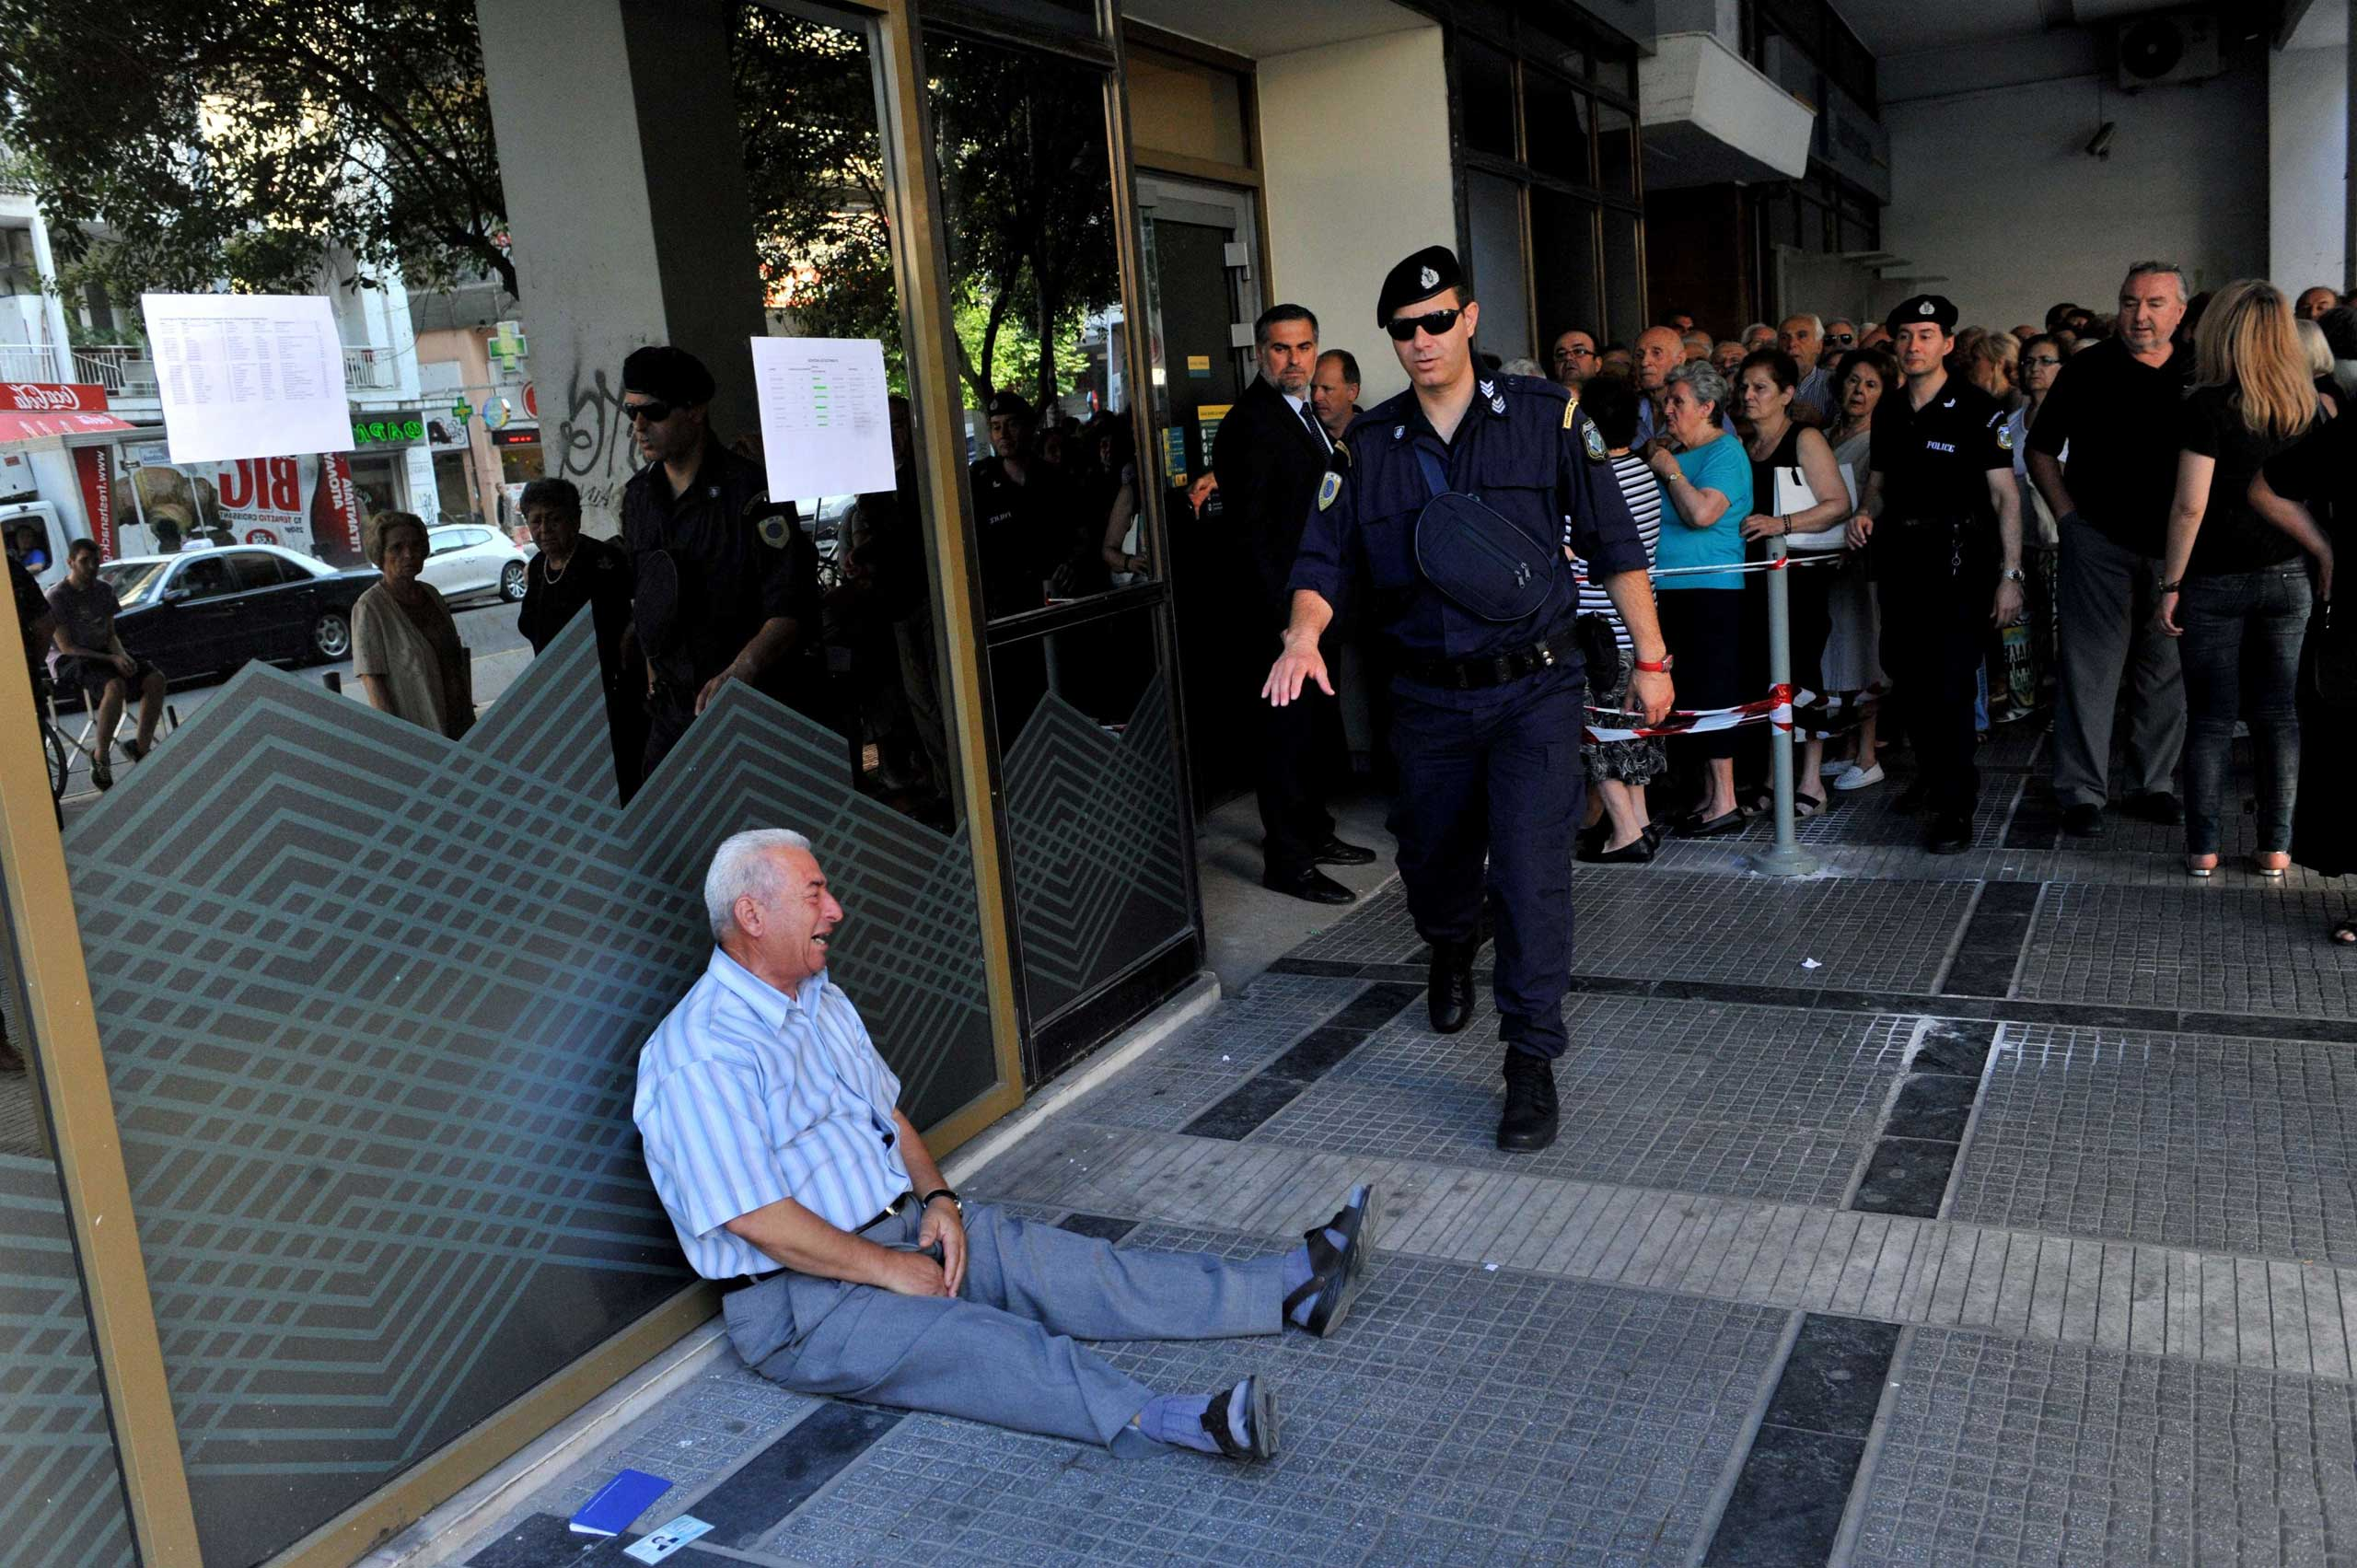 Giorgos Chatzifotiadis, sitting on the ground crying outside a national bank branch, as pensioners queue to withdraw their pensions, with a limit of 120 euros, in Thessaloniki, on July 3, 2015.